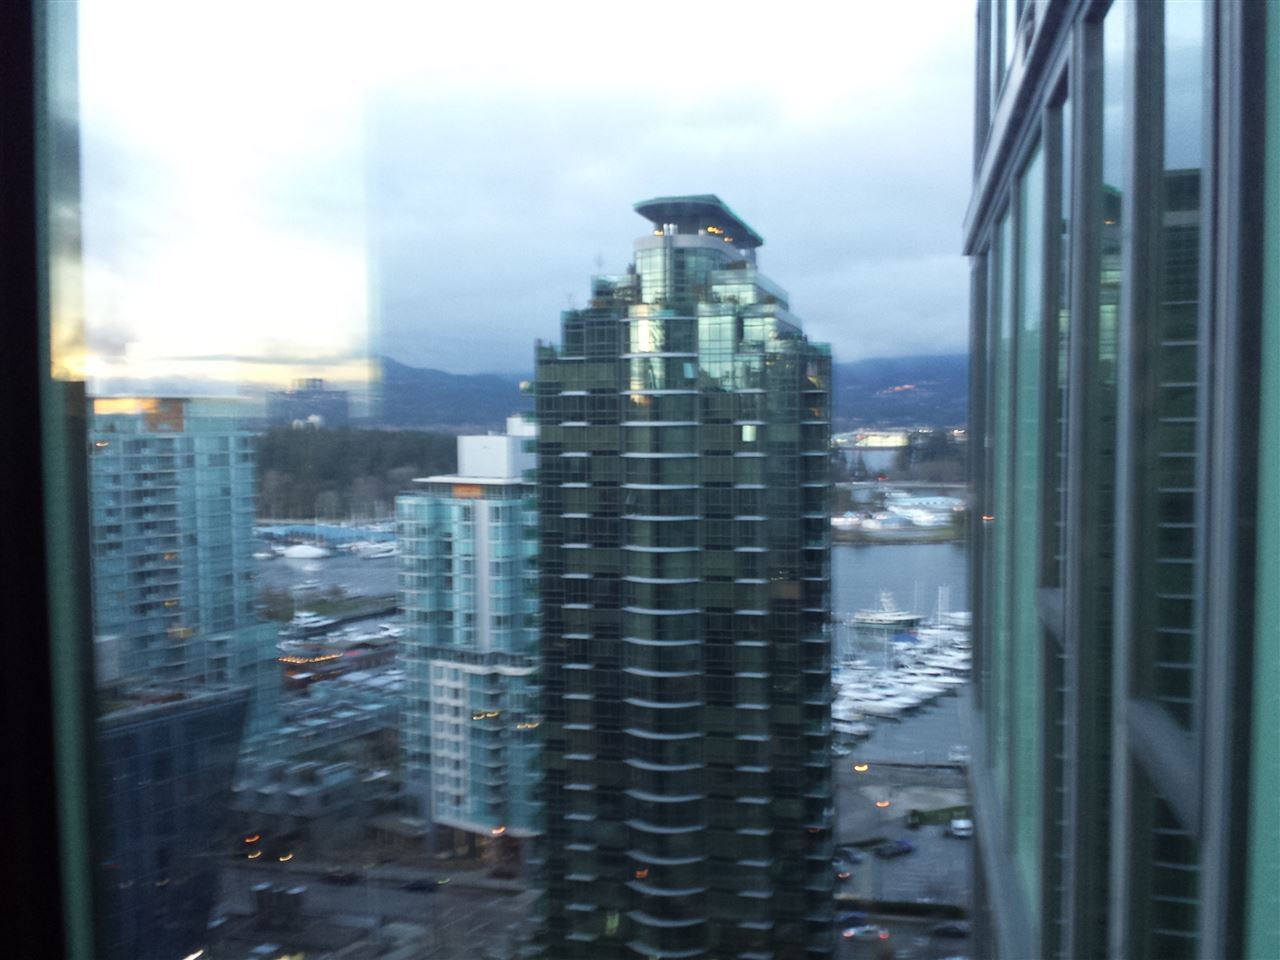 """Photo 3: Photos: 2206 1331 W GEORGIA Street in Vancouver: Coal Harbour Condo for sale in """"THE POINTE"""" (Vancouver West)  : MLS®# R2028676"""